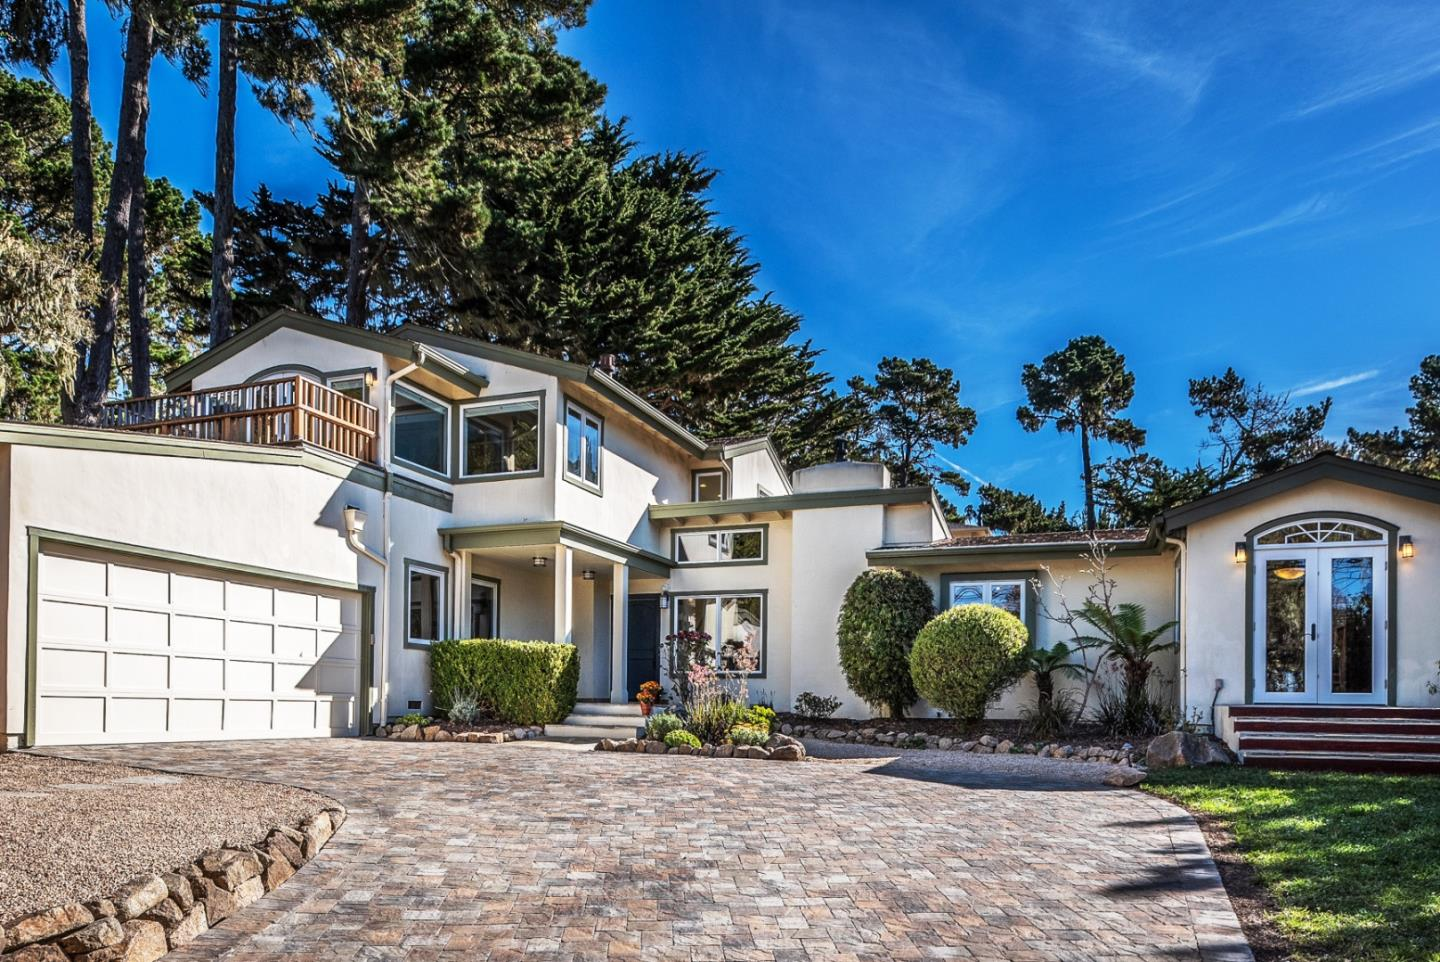 واحد منزل الأسرة للـ Rent في 3075 Sloat Road Pebble Beach, California 93953 United States